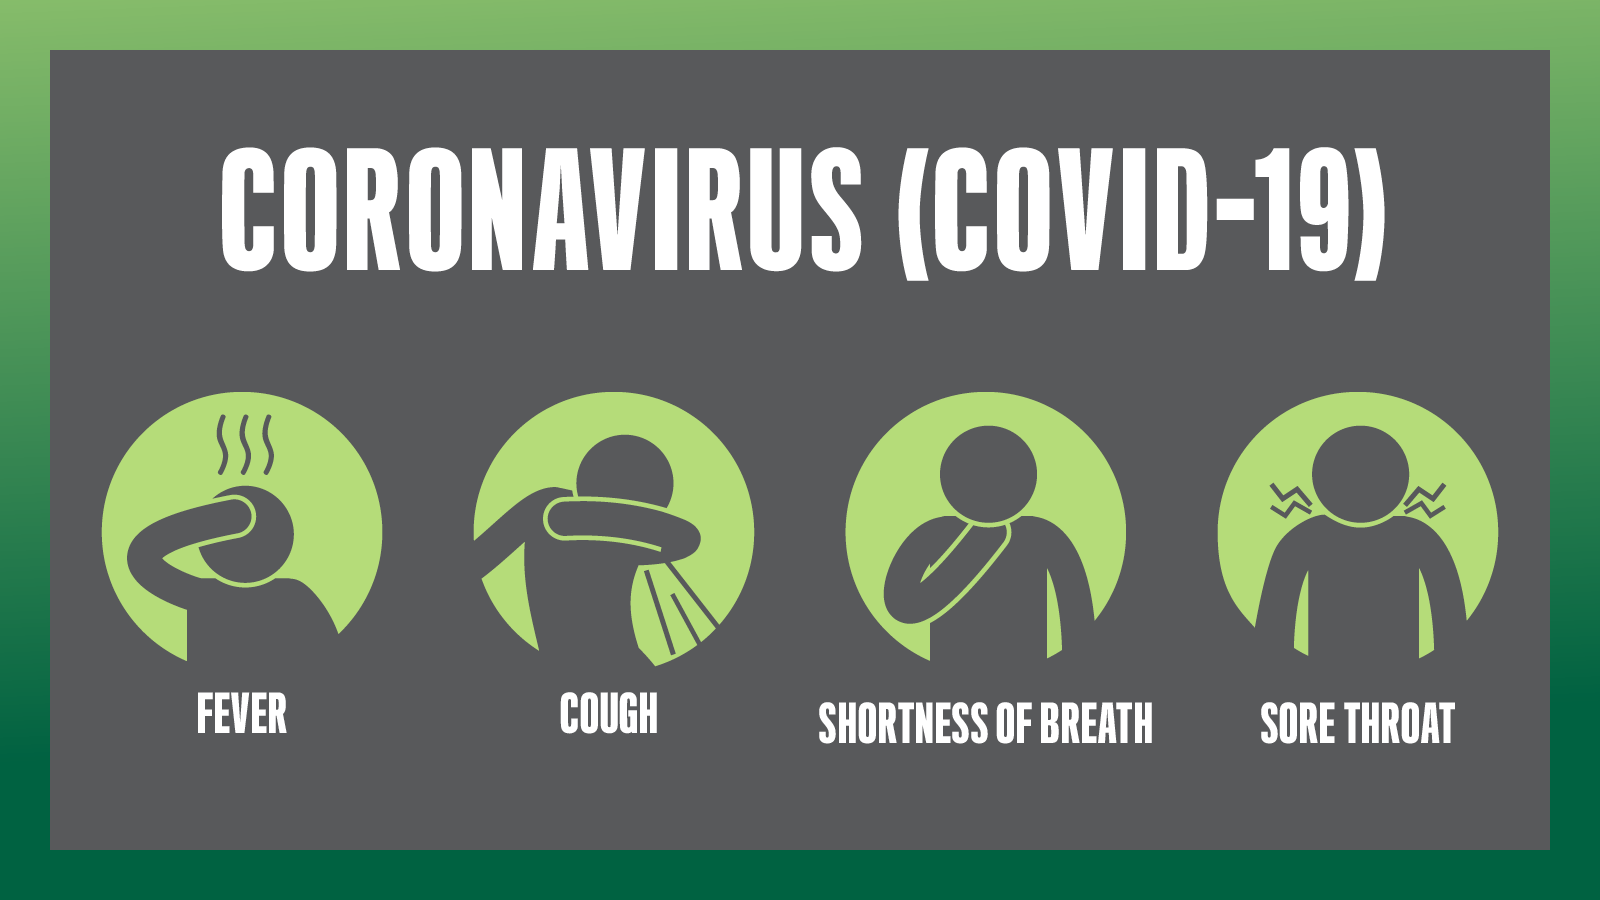 coronavirus-covid-19-information-for-residents-of-residential-care-services-family-members-and-visitors